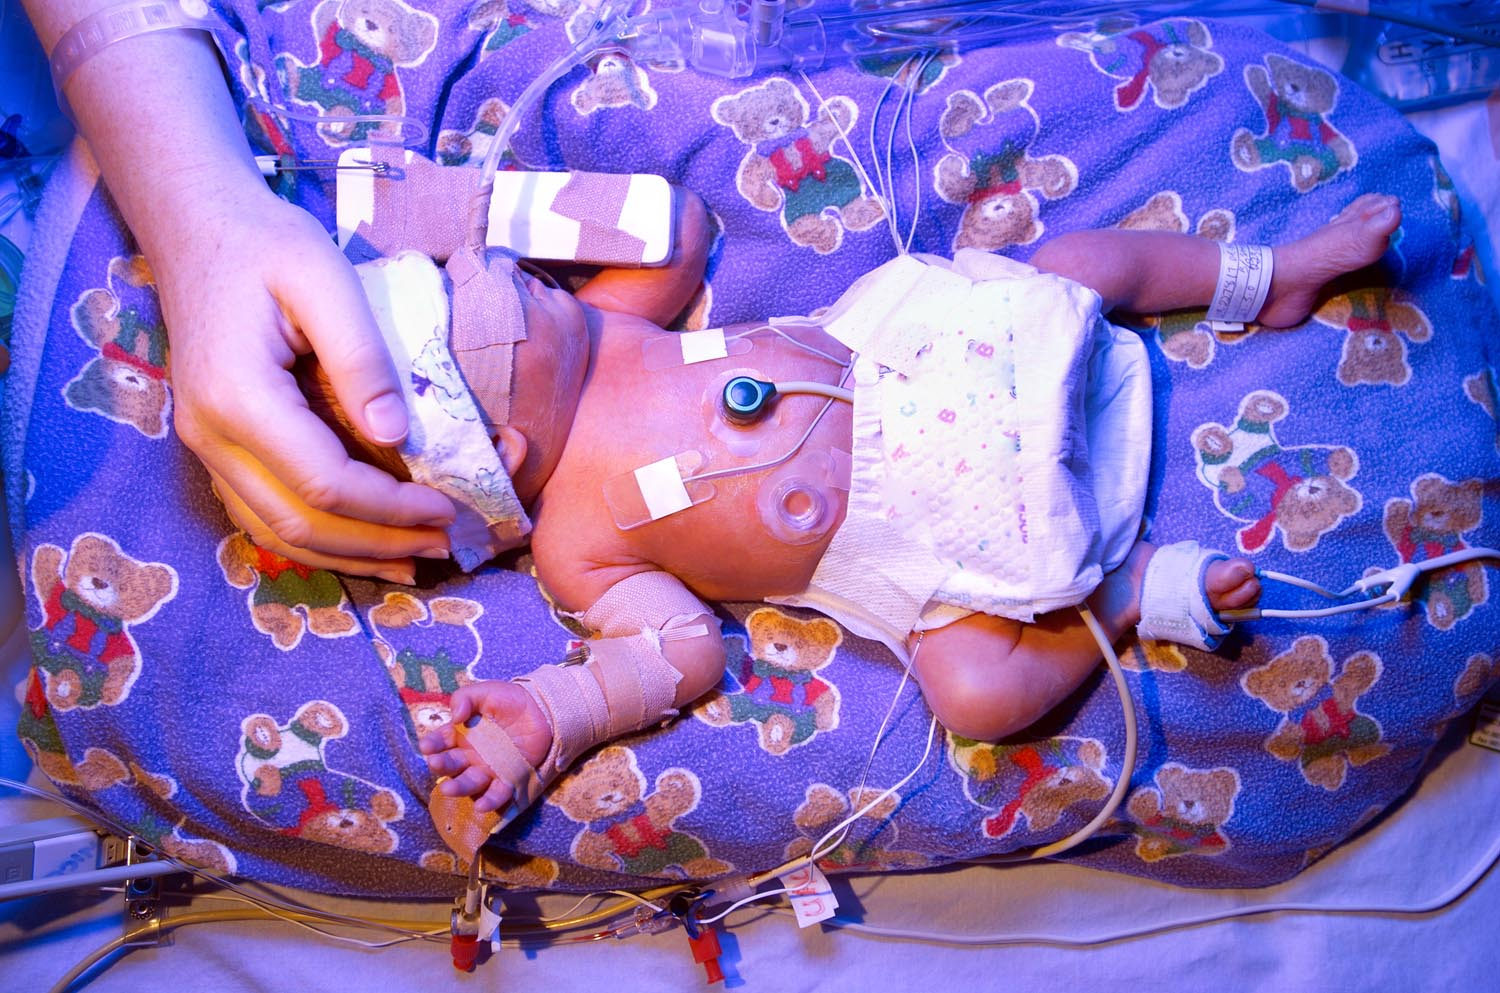 nicu micropreemie with IV phototherapy, mothers hand on head